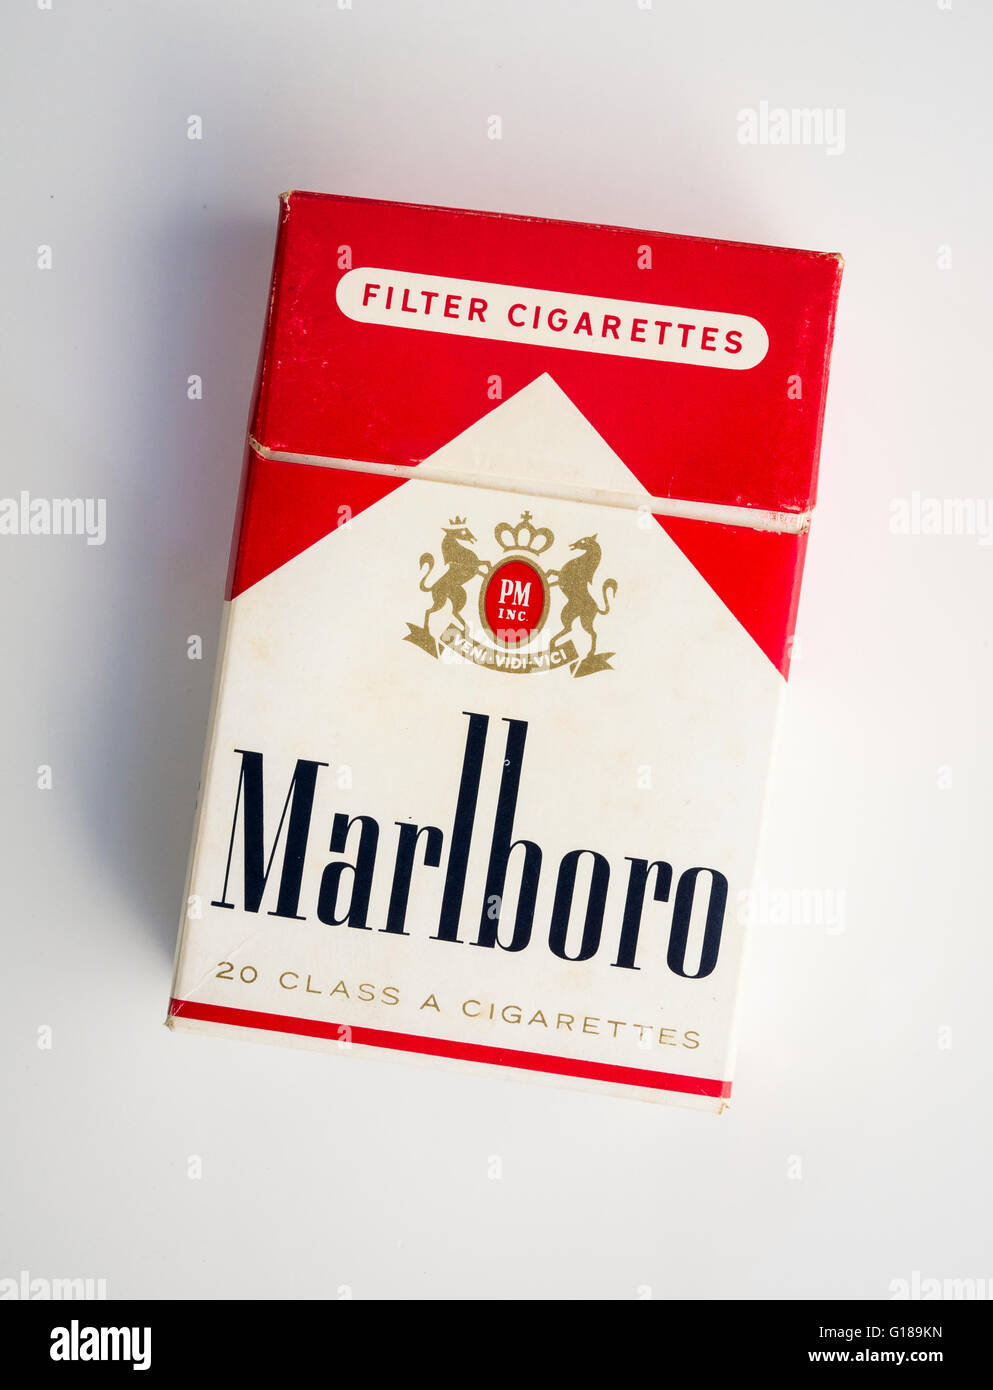 Buy Glamour cigarettes in NZ